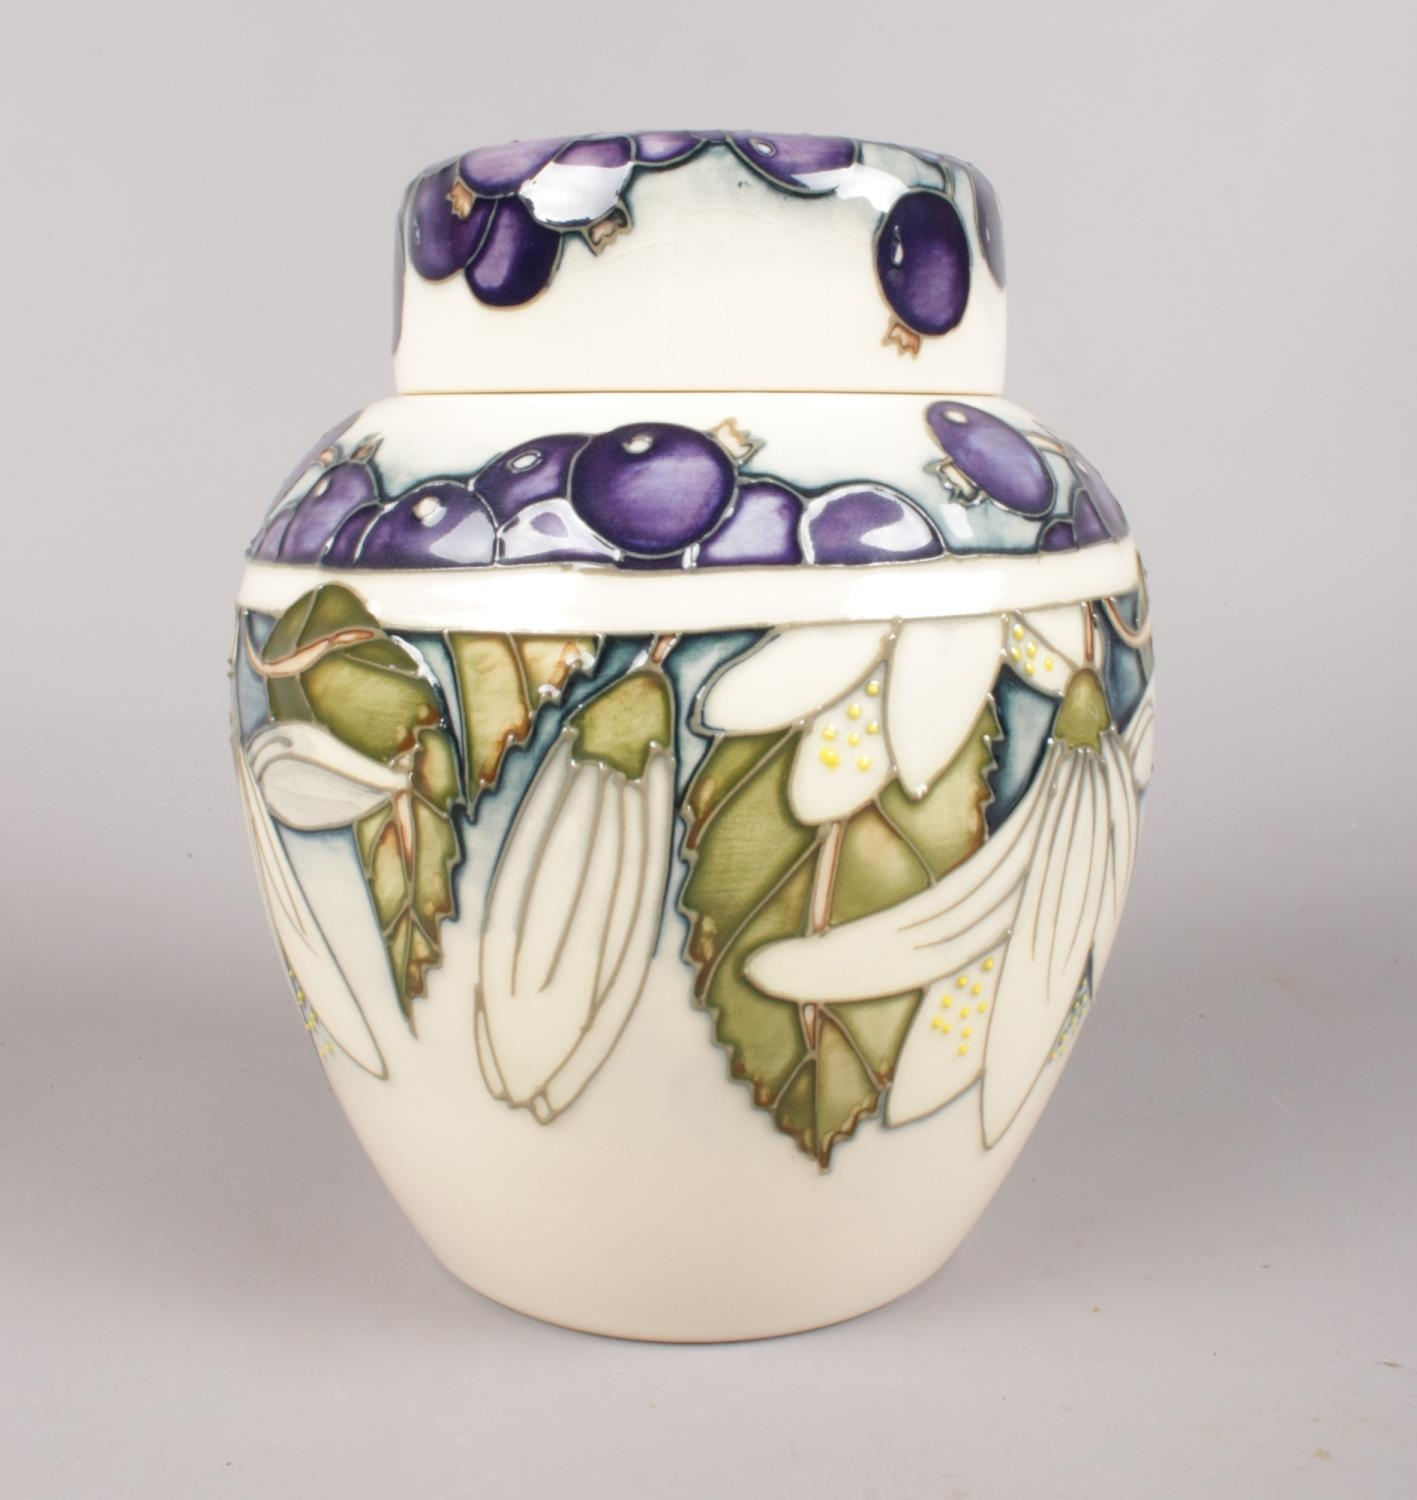 A Moorcroft ginger jar - decorated with blueberries & white flowers (Juneberry), dated 2000. H: